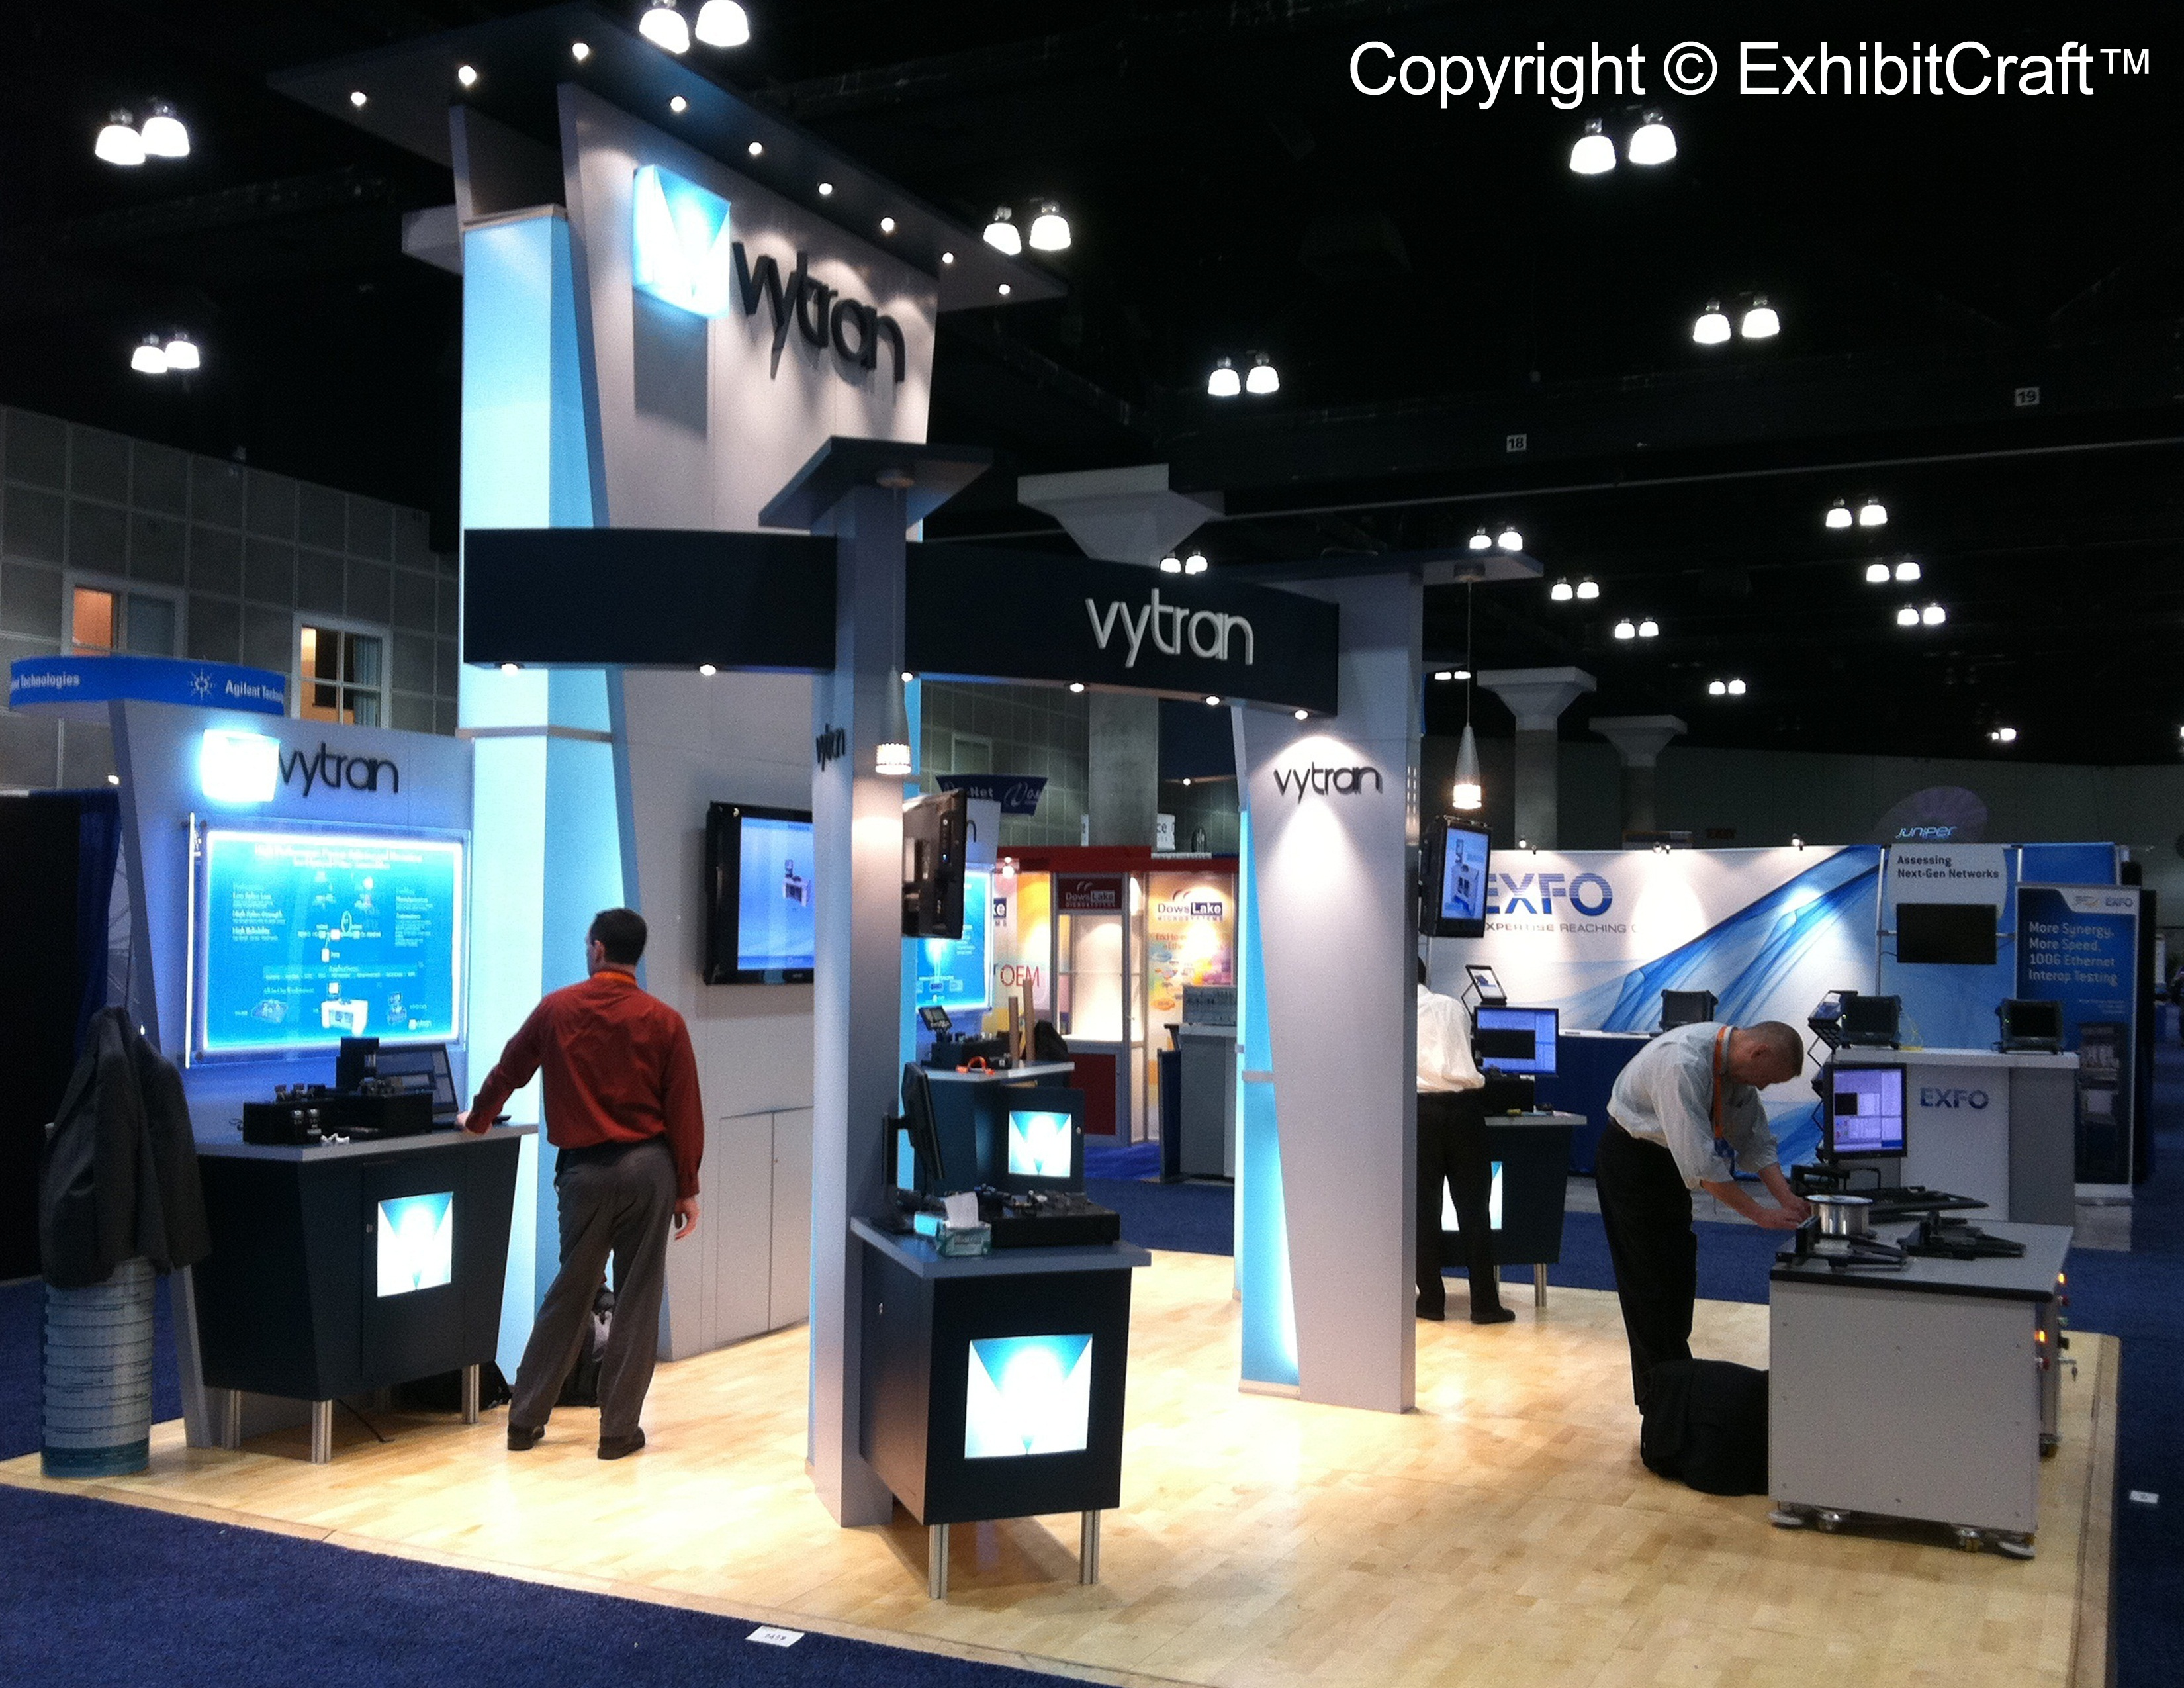 Booth Sizes For Exhibition : Three key elements for getting attention at your tradeshow